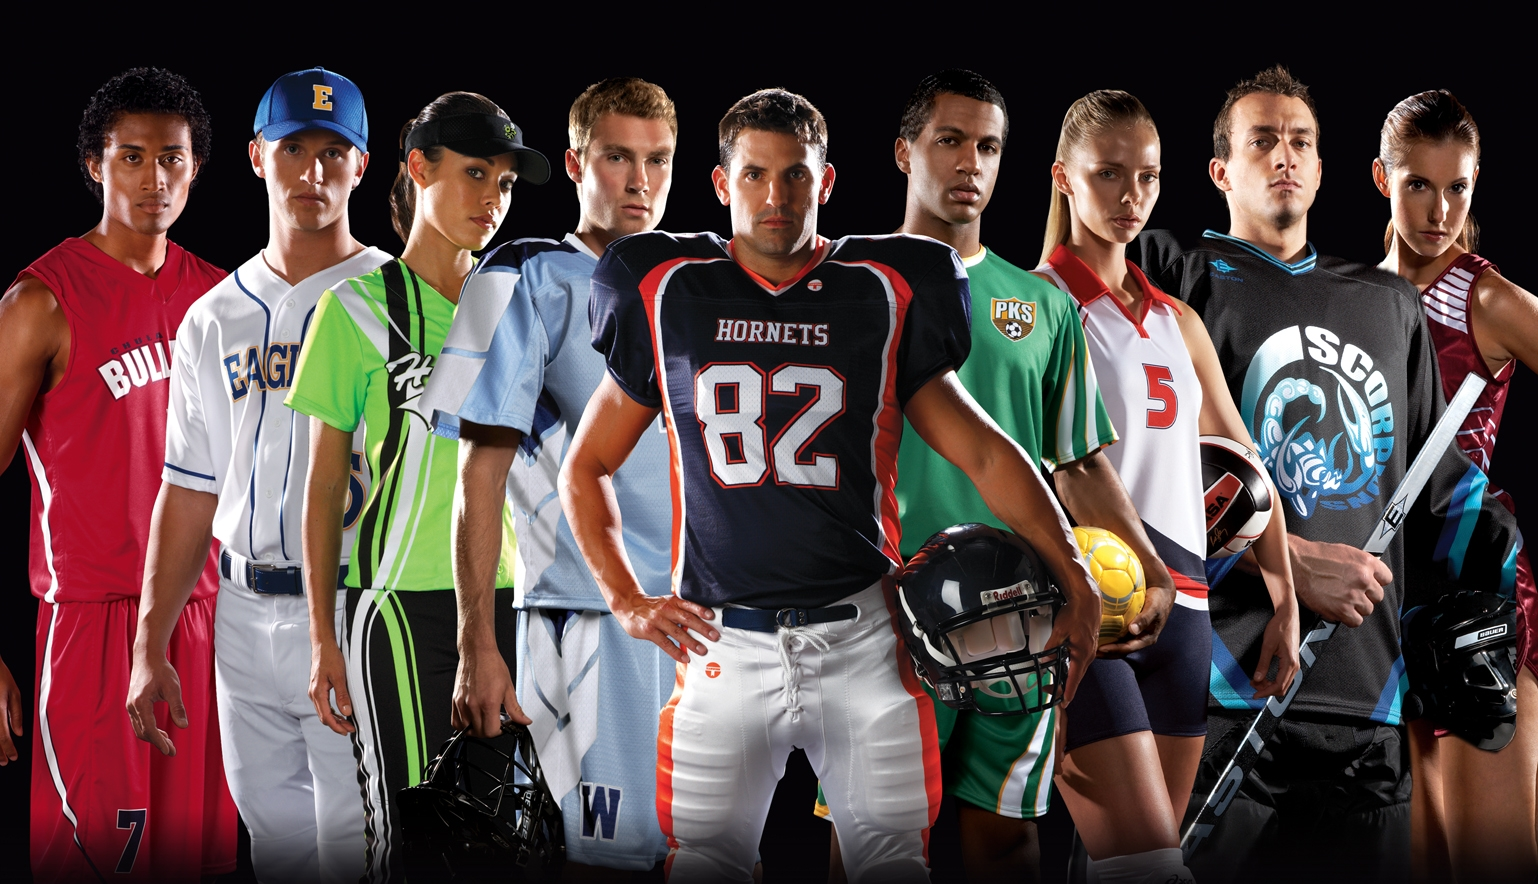 uniforms-multi-sports1